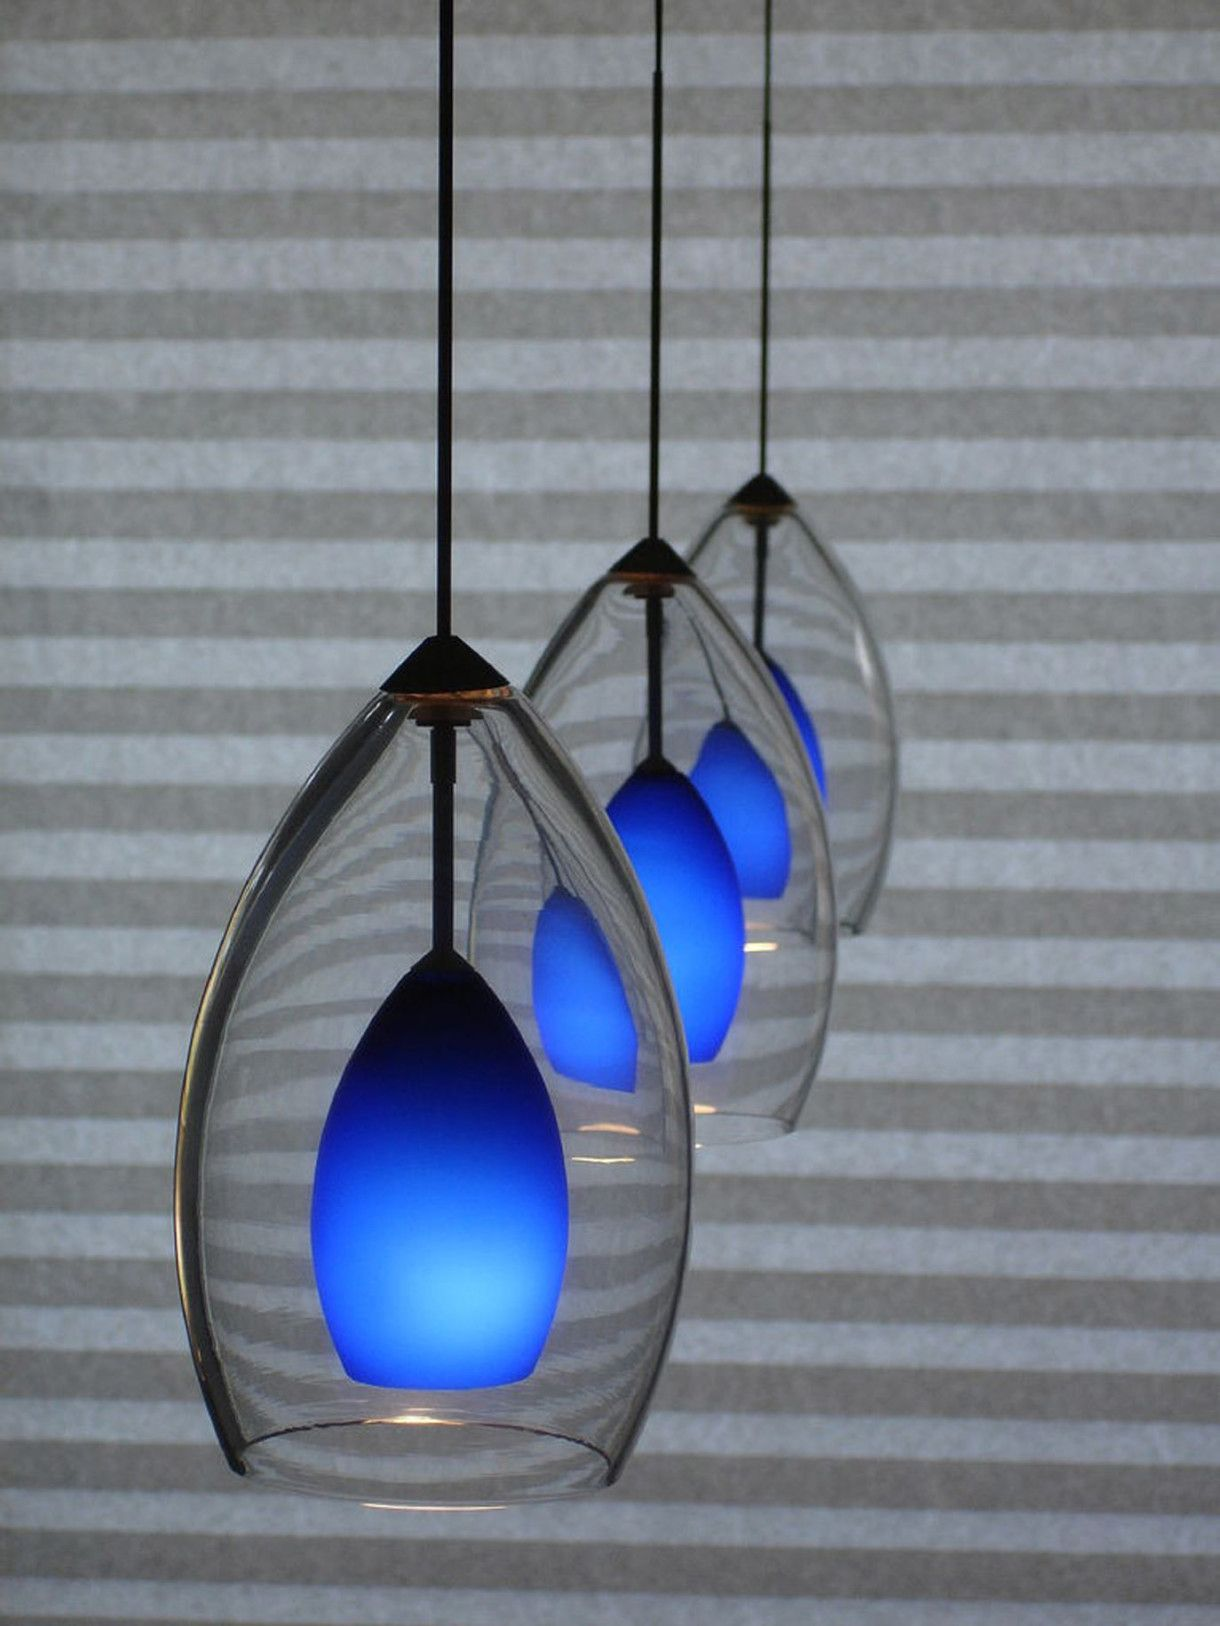 Wonderful Elegant Blue Pendant Lamp Design Idea By David Hunter Making . Gallery